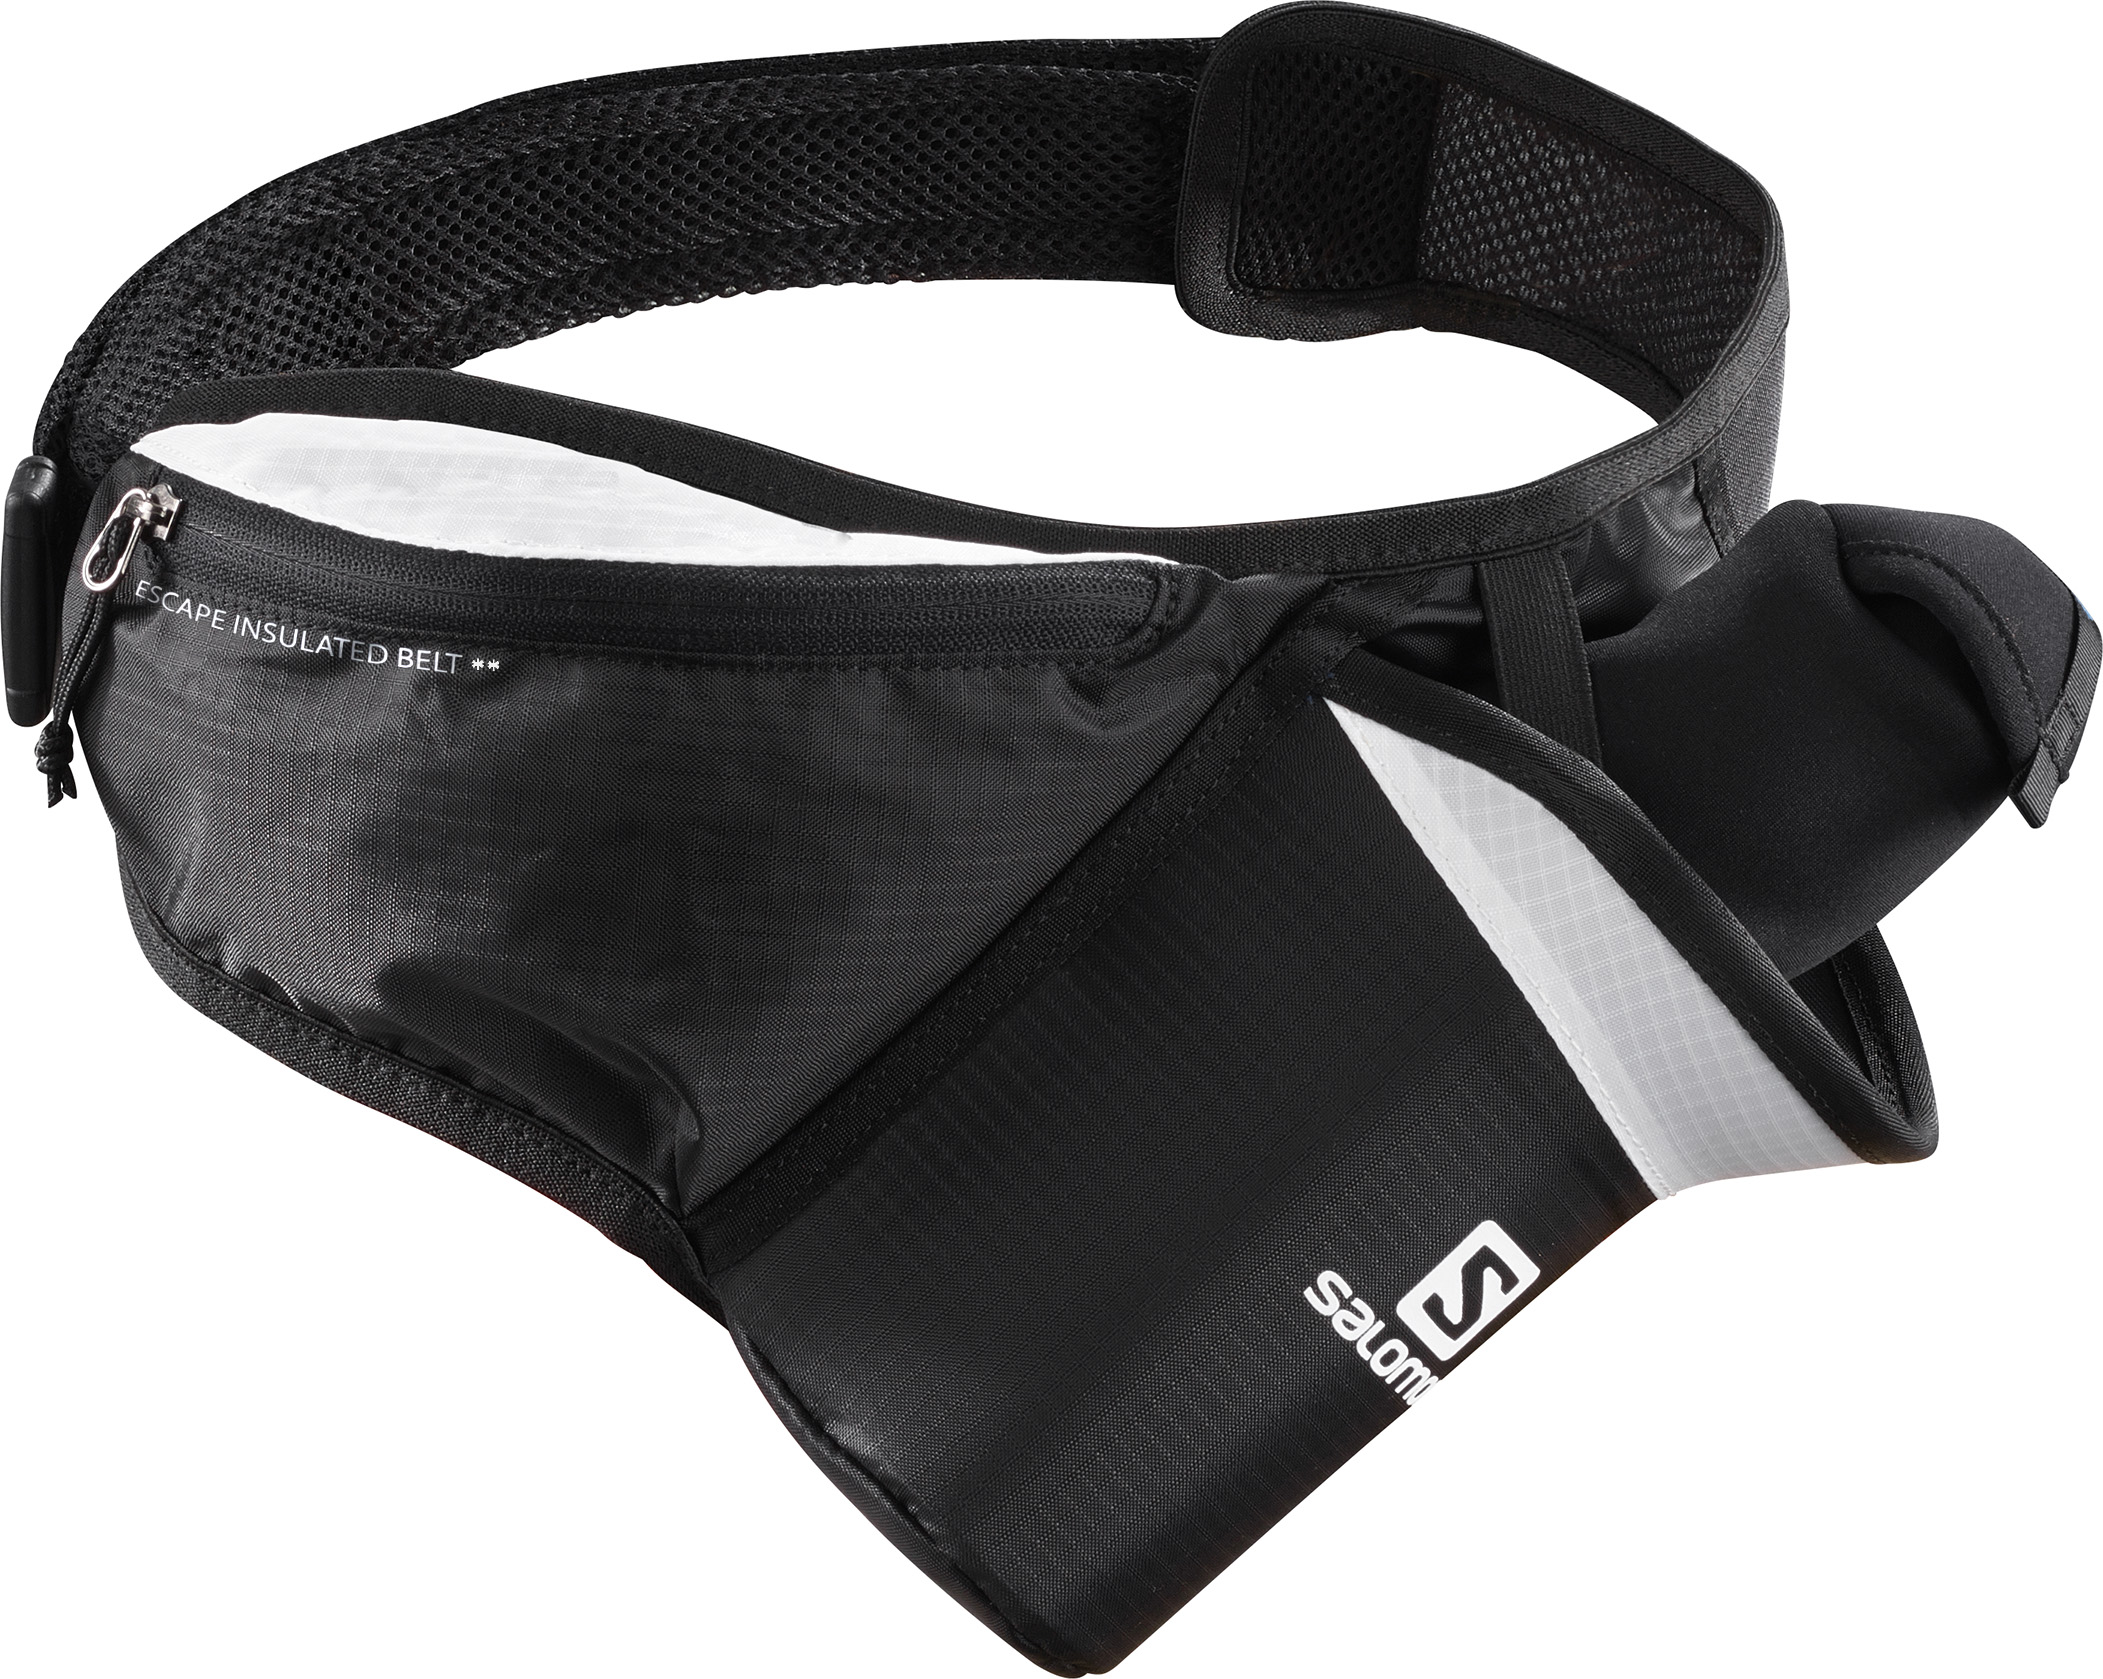 SALOMON ESCAPE INSULATED BELT Black